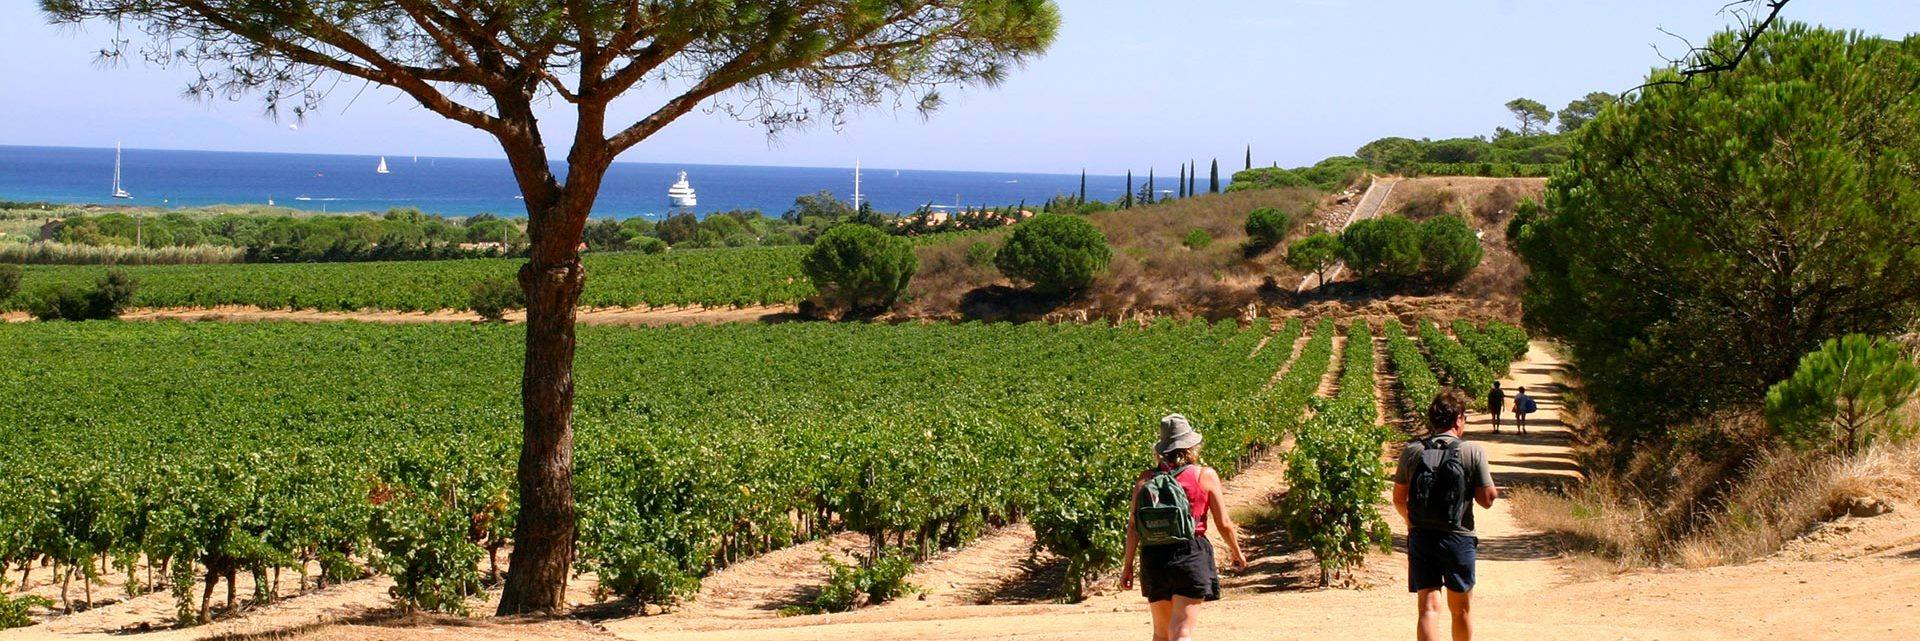 Walking between the vineyards and the sea - La Croix Valmer